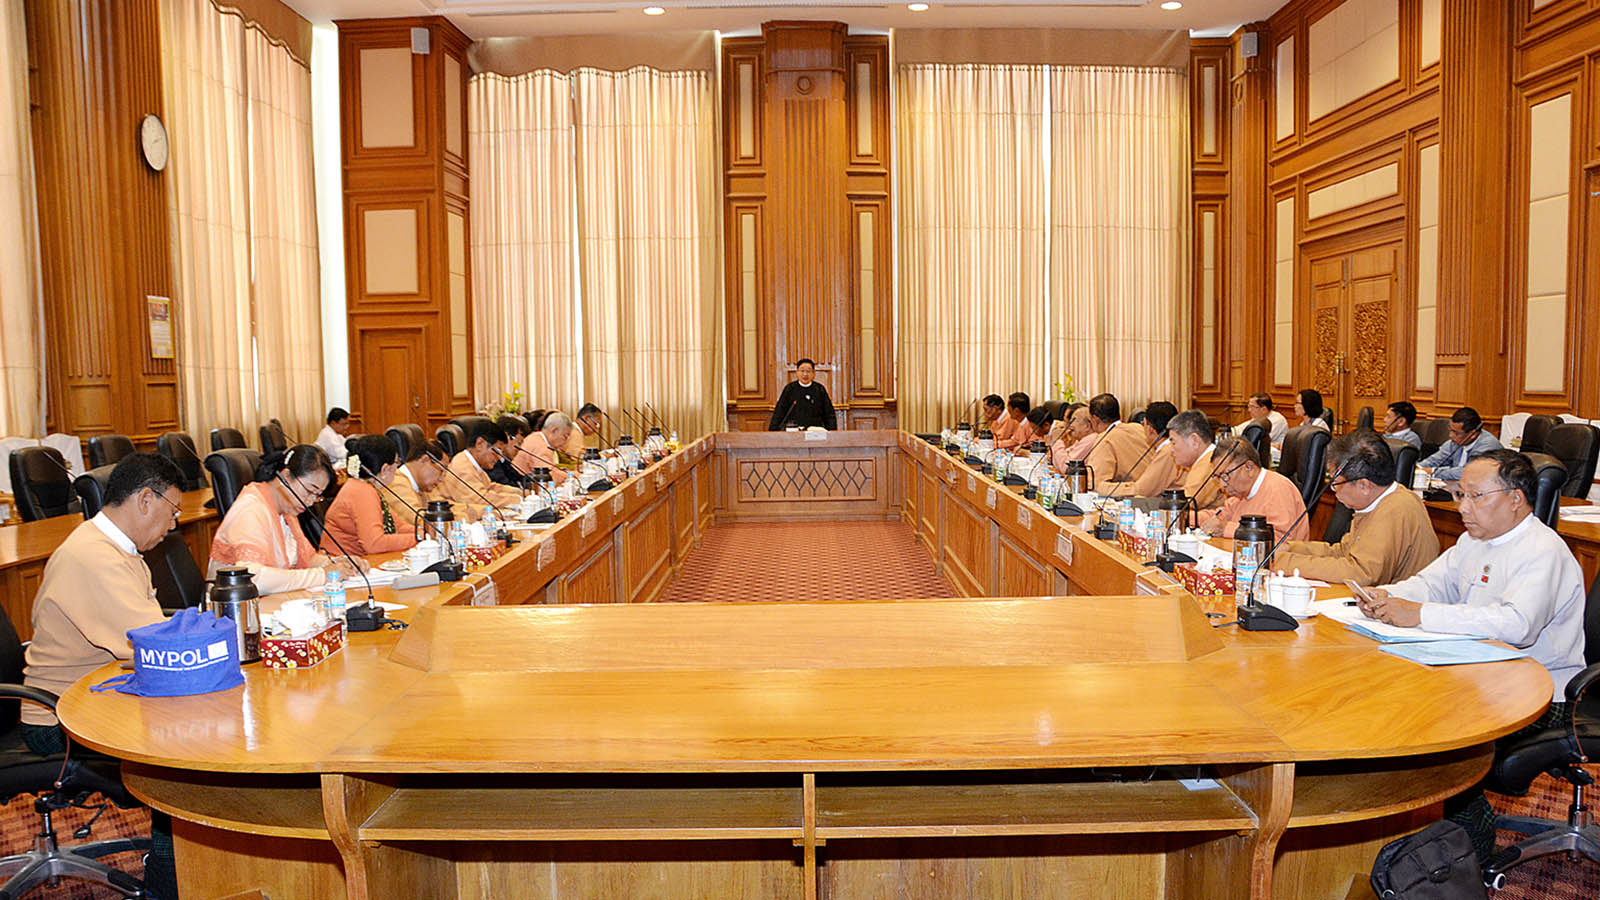 Pyithu Hluttaw Speaker U T Khun Myat addresses the coordination meeting with the committee chairpersons on 7 May, 2019.